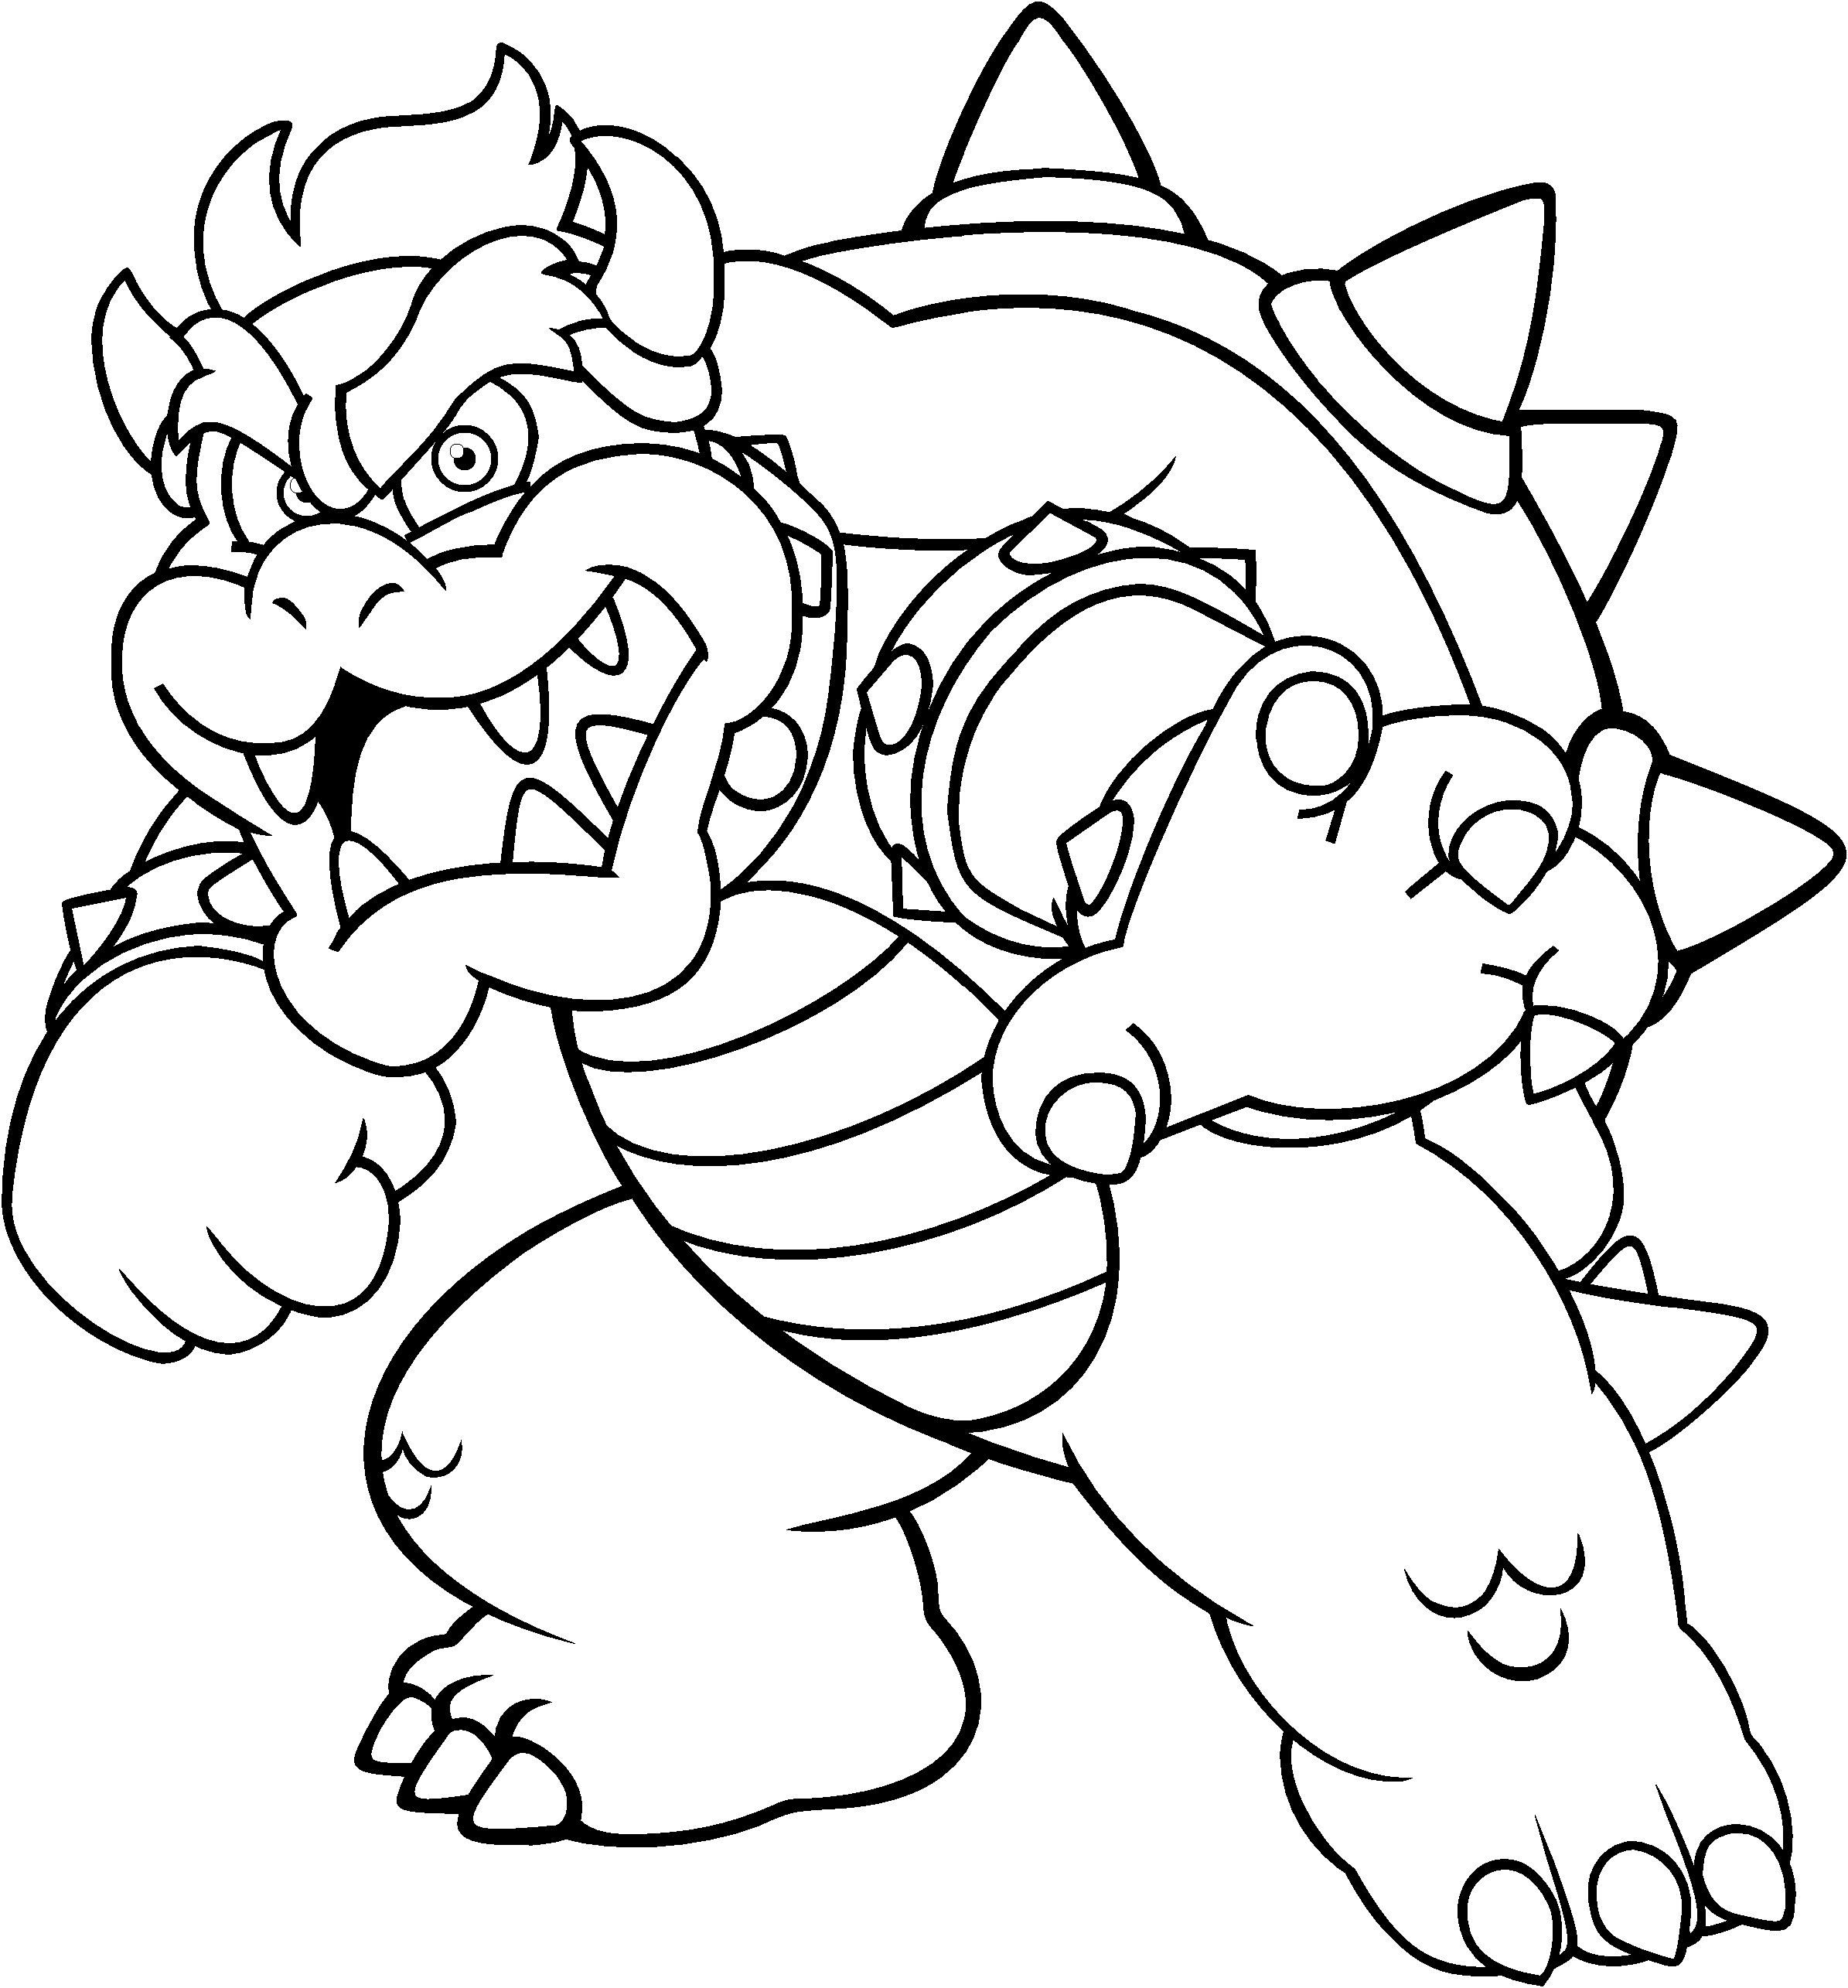 free bowser coloring pages - photo#7